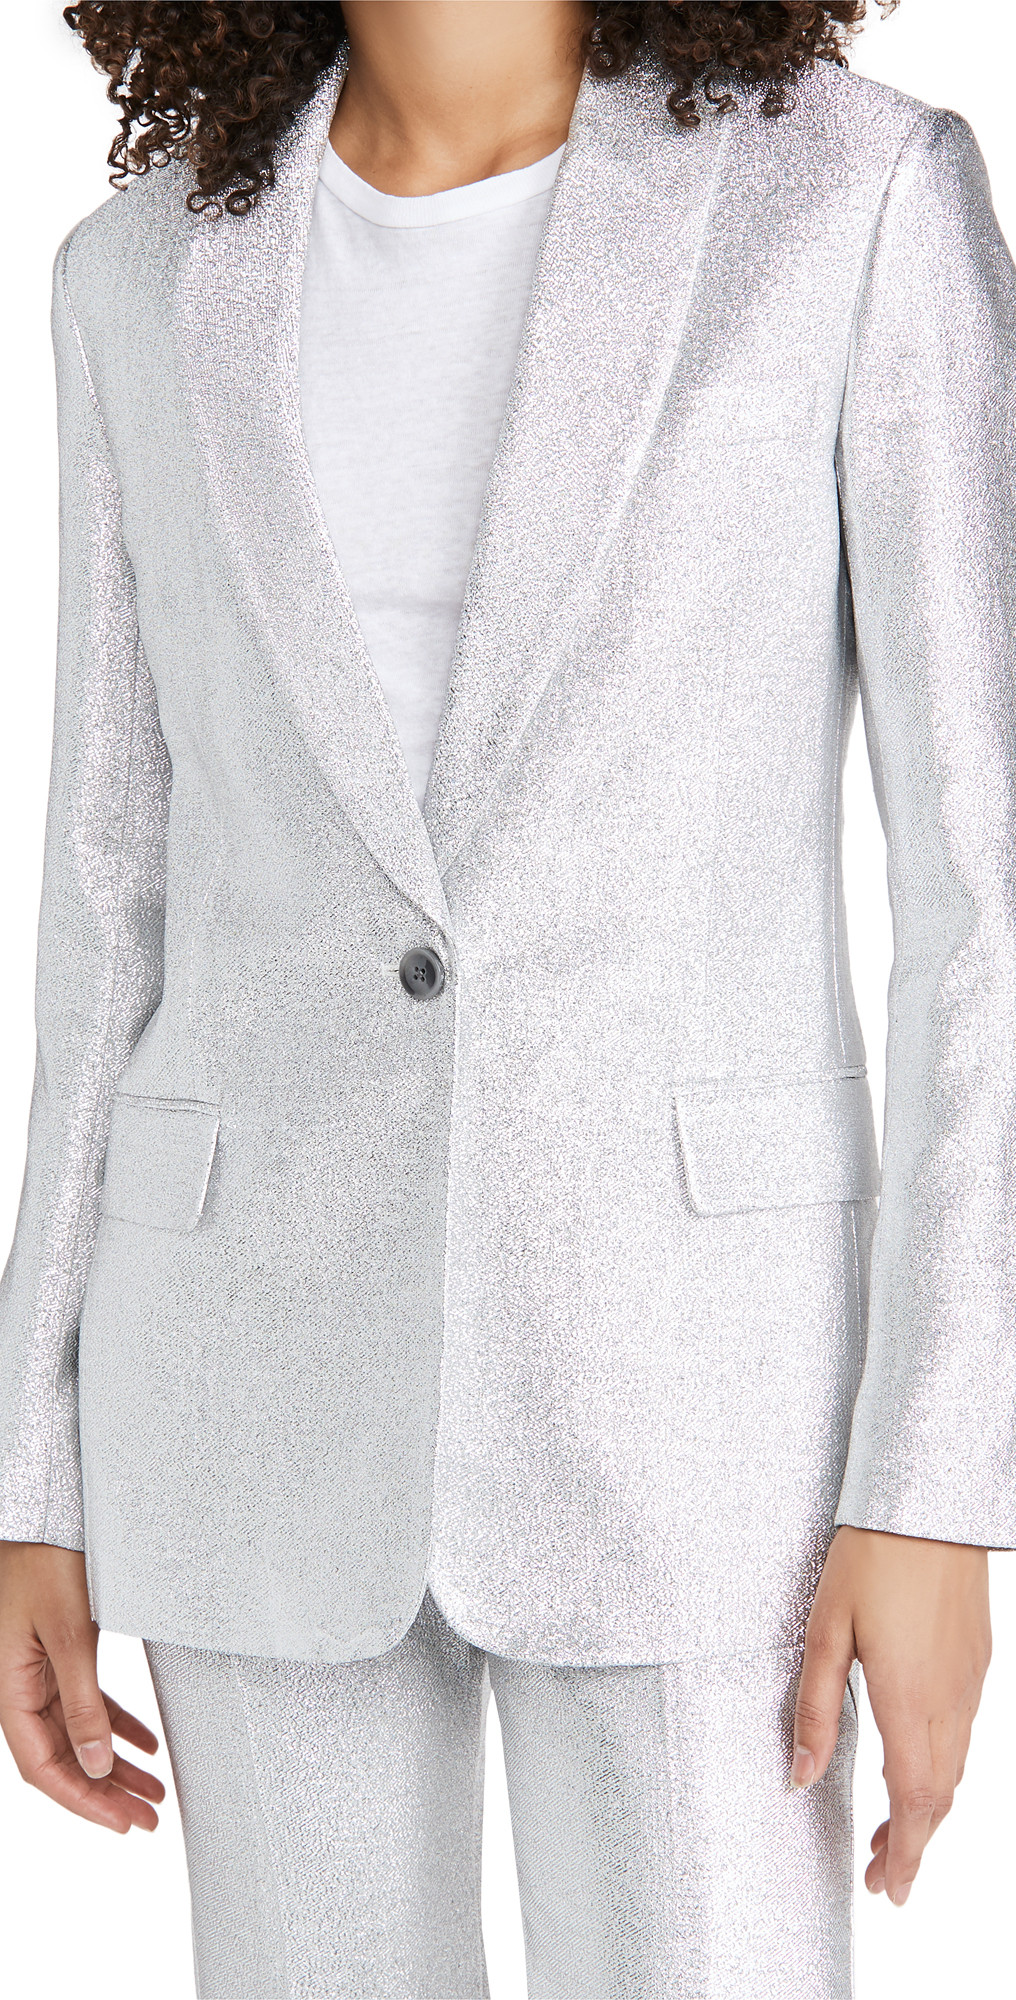 3.1 Phillip Lim Metallic Lame Shawl Lapel Blazer